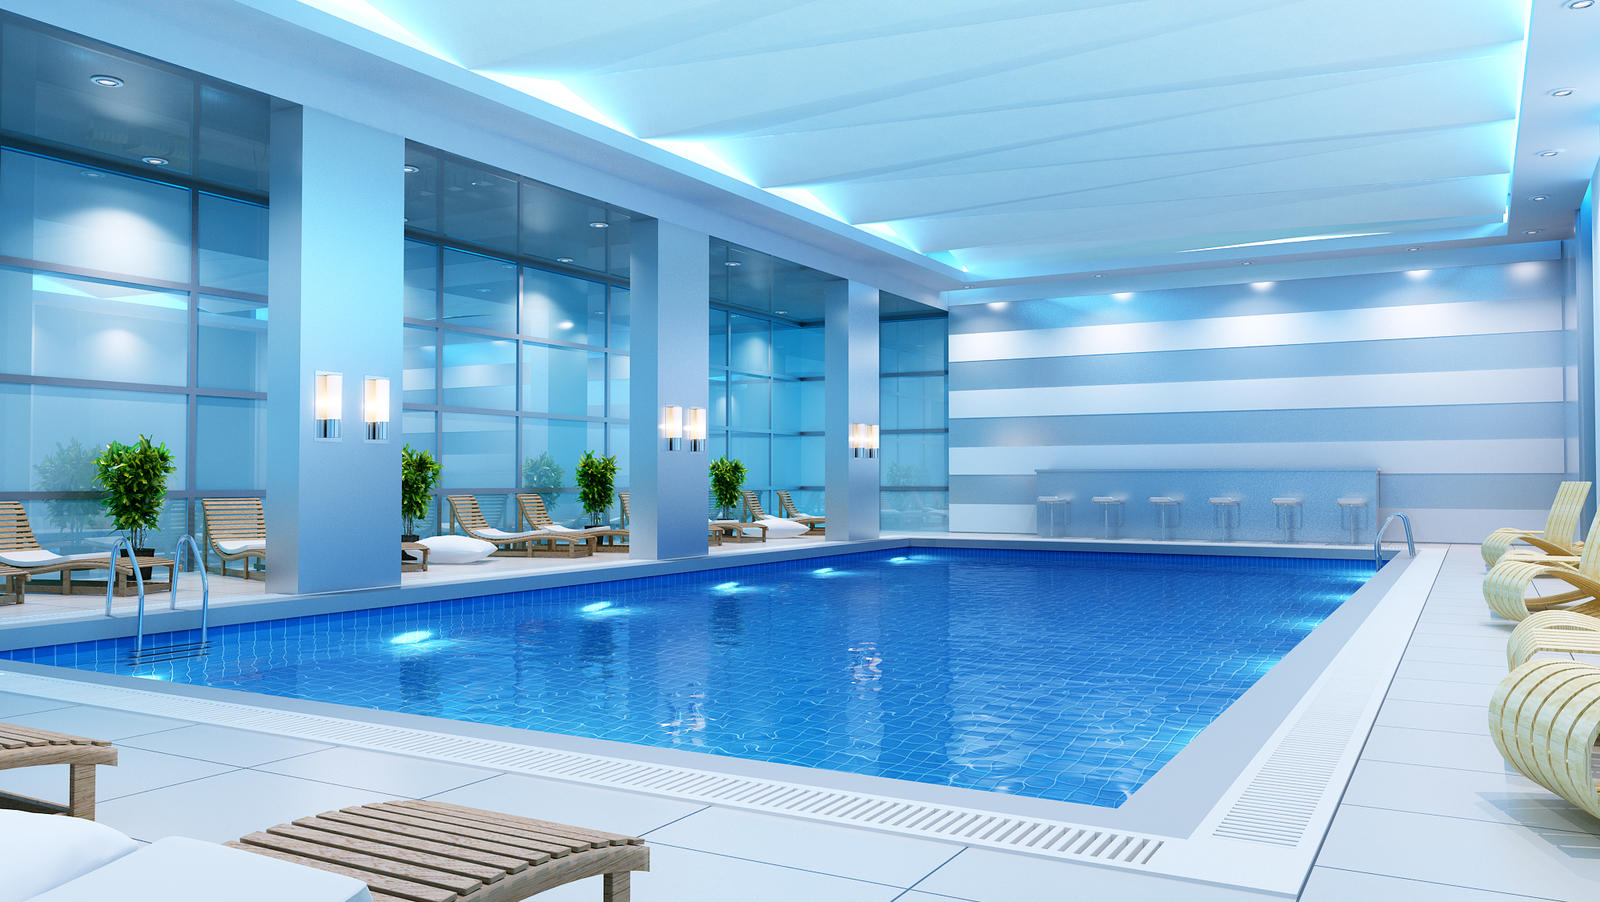 Swimming pool design by tolcha on deviantart for Pool design by poolside